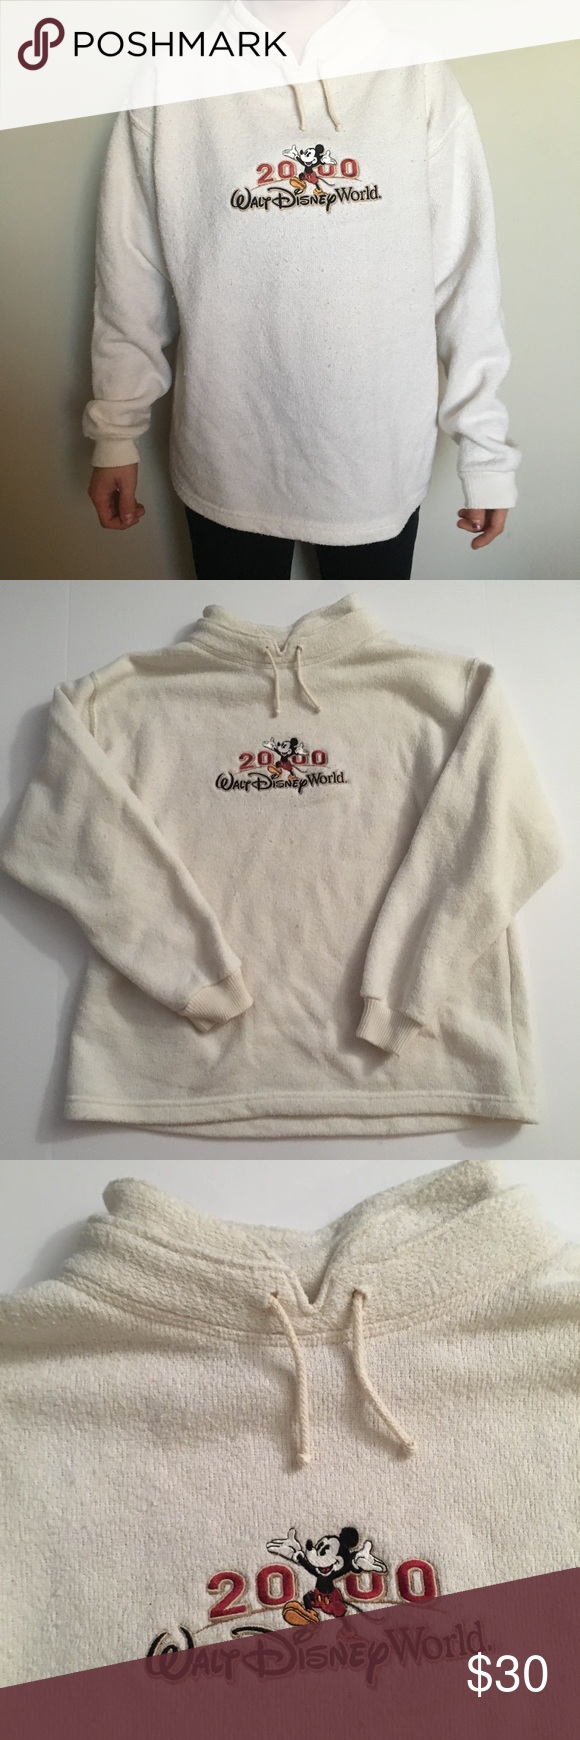 Vintage 2000 Walt Disney world sweater •Vintage 2000 Walt Disney world sweater  •50% cotton, 50% polyester  •Size: Small  •All Items checked for stains, holes, and excessive wear: If no issues noted then item is in very good condition!  •Comes from smoke free home •Have some furry friends. All items are freshly laundered and lint rolled before being shipped out but a few hairs might be on clothing •Open to offers  •Bundle discounts available  •Ships within 24 hours of purchasing, will…